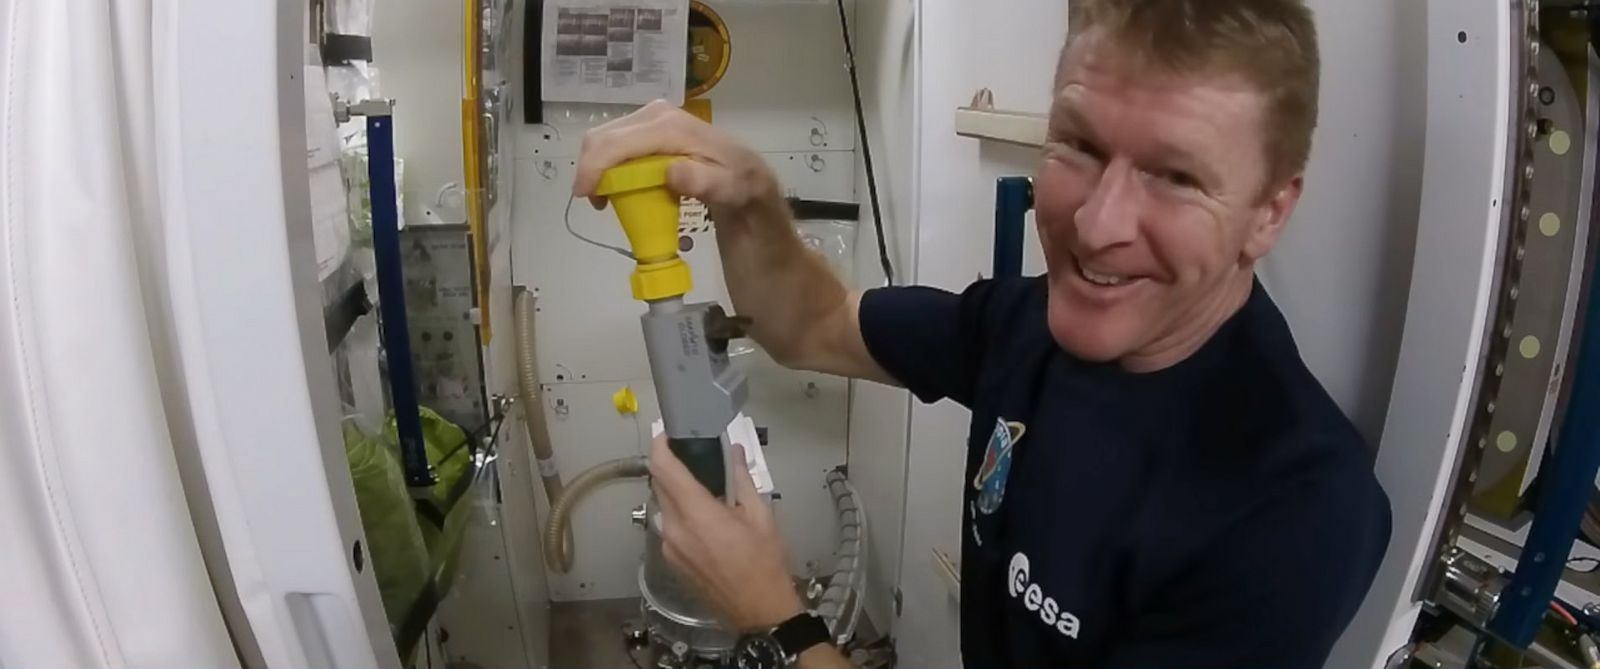 Astronaut Tim Peake Shows How To Use Space Toilet In Zero